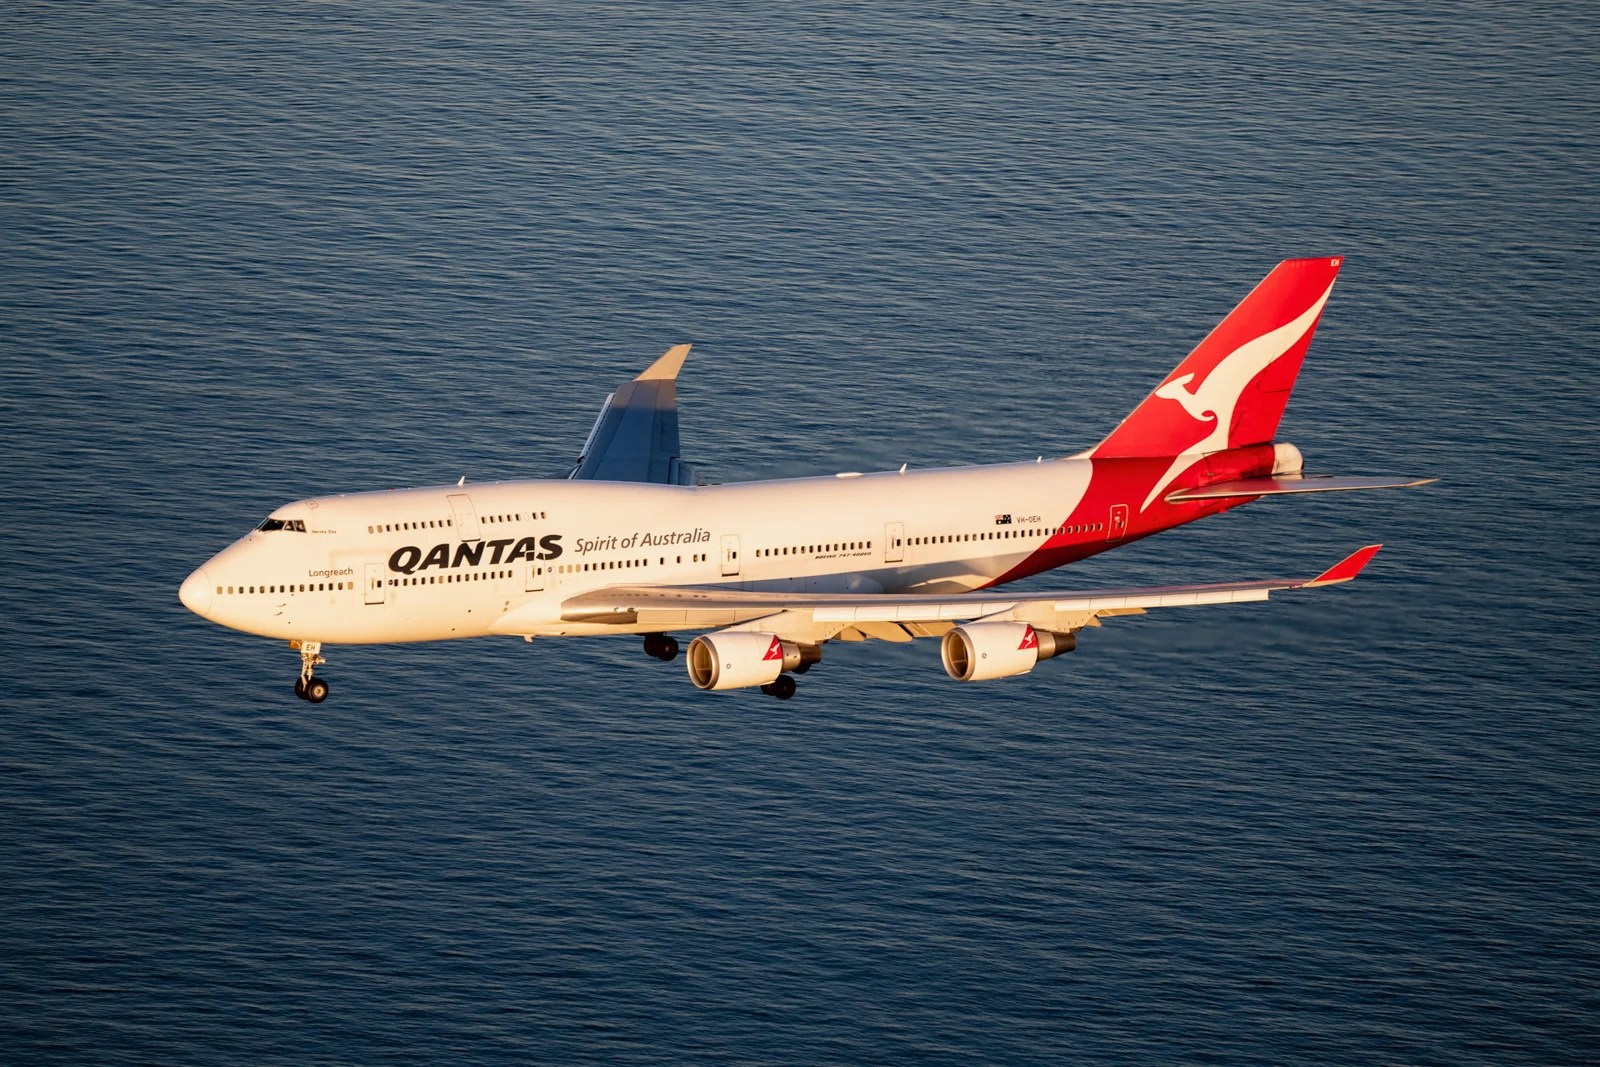 Boeing is ending production of the 747